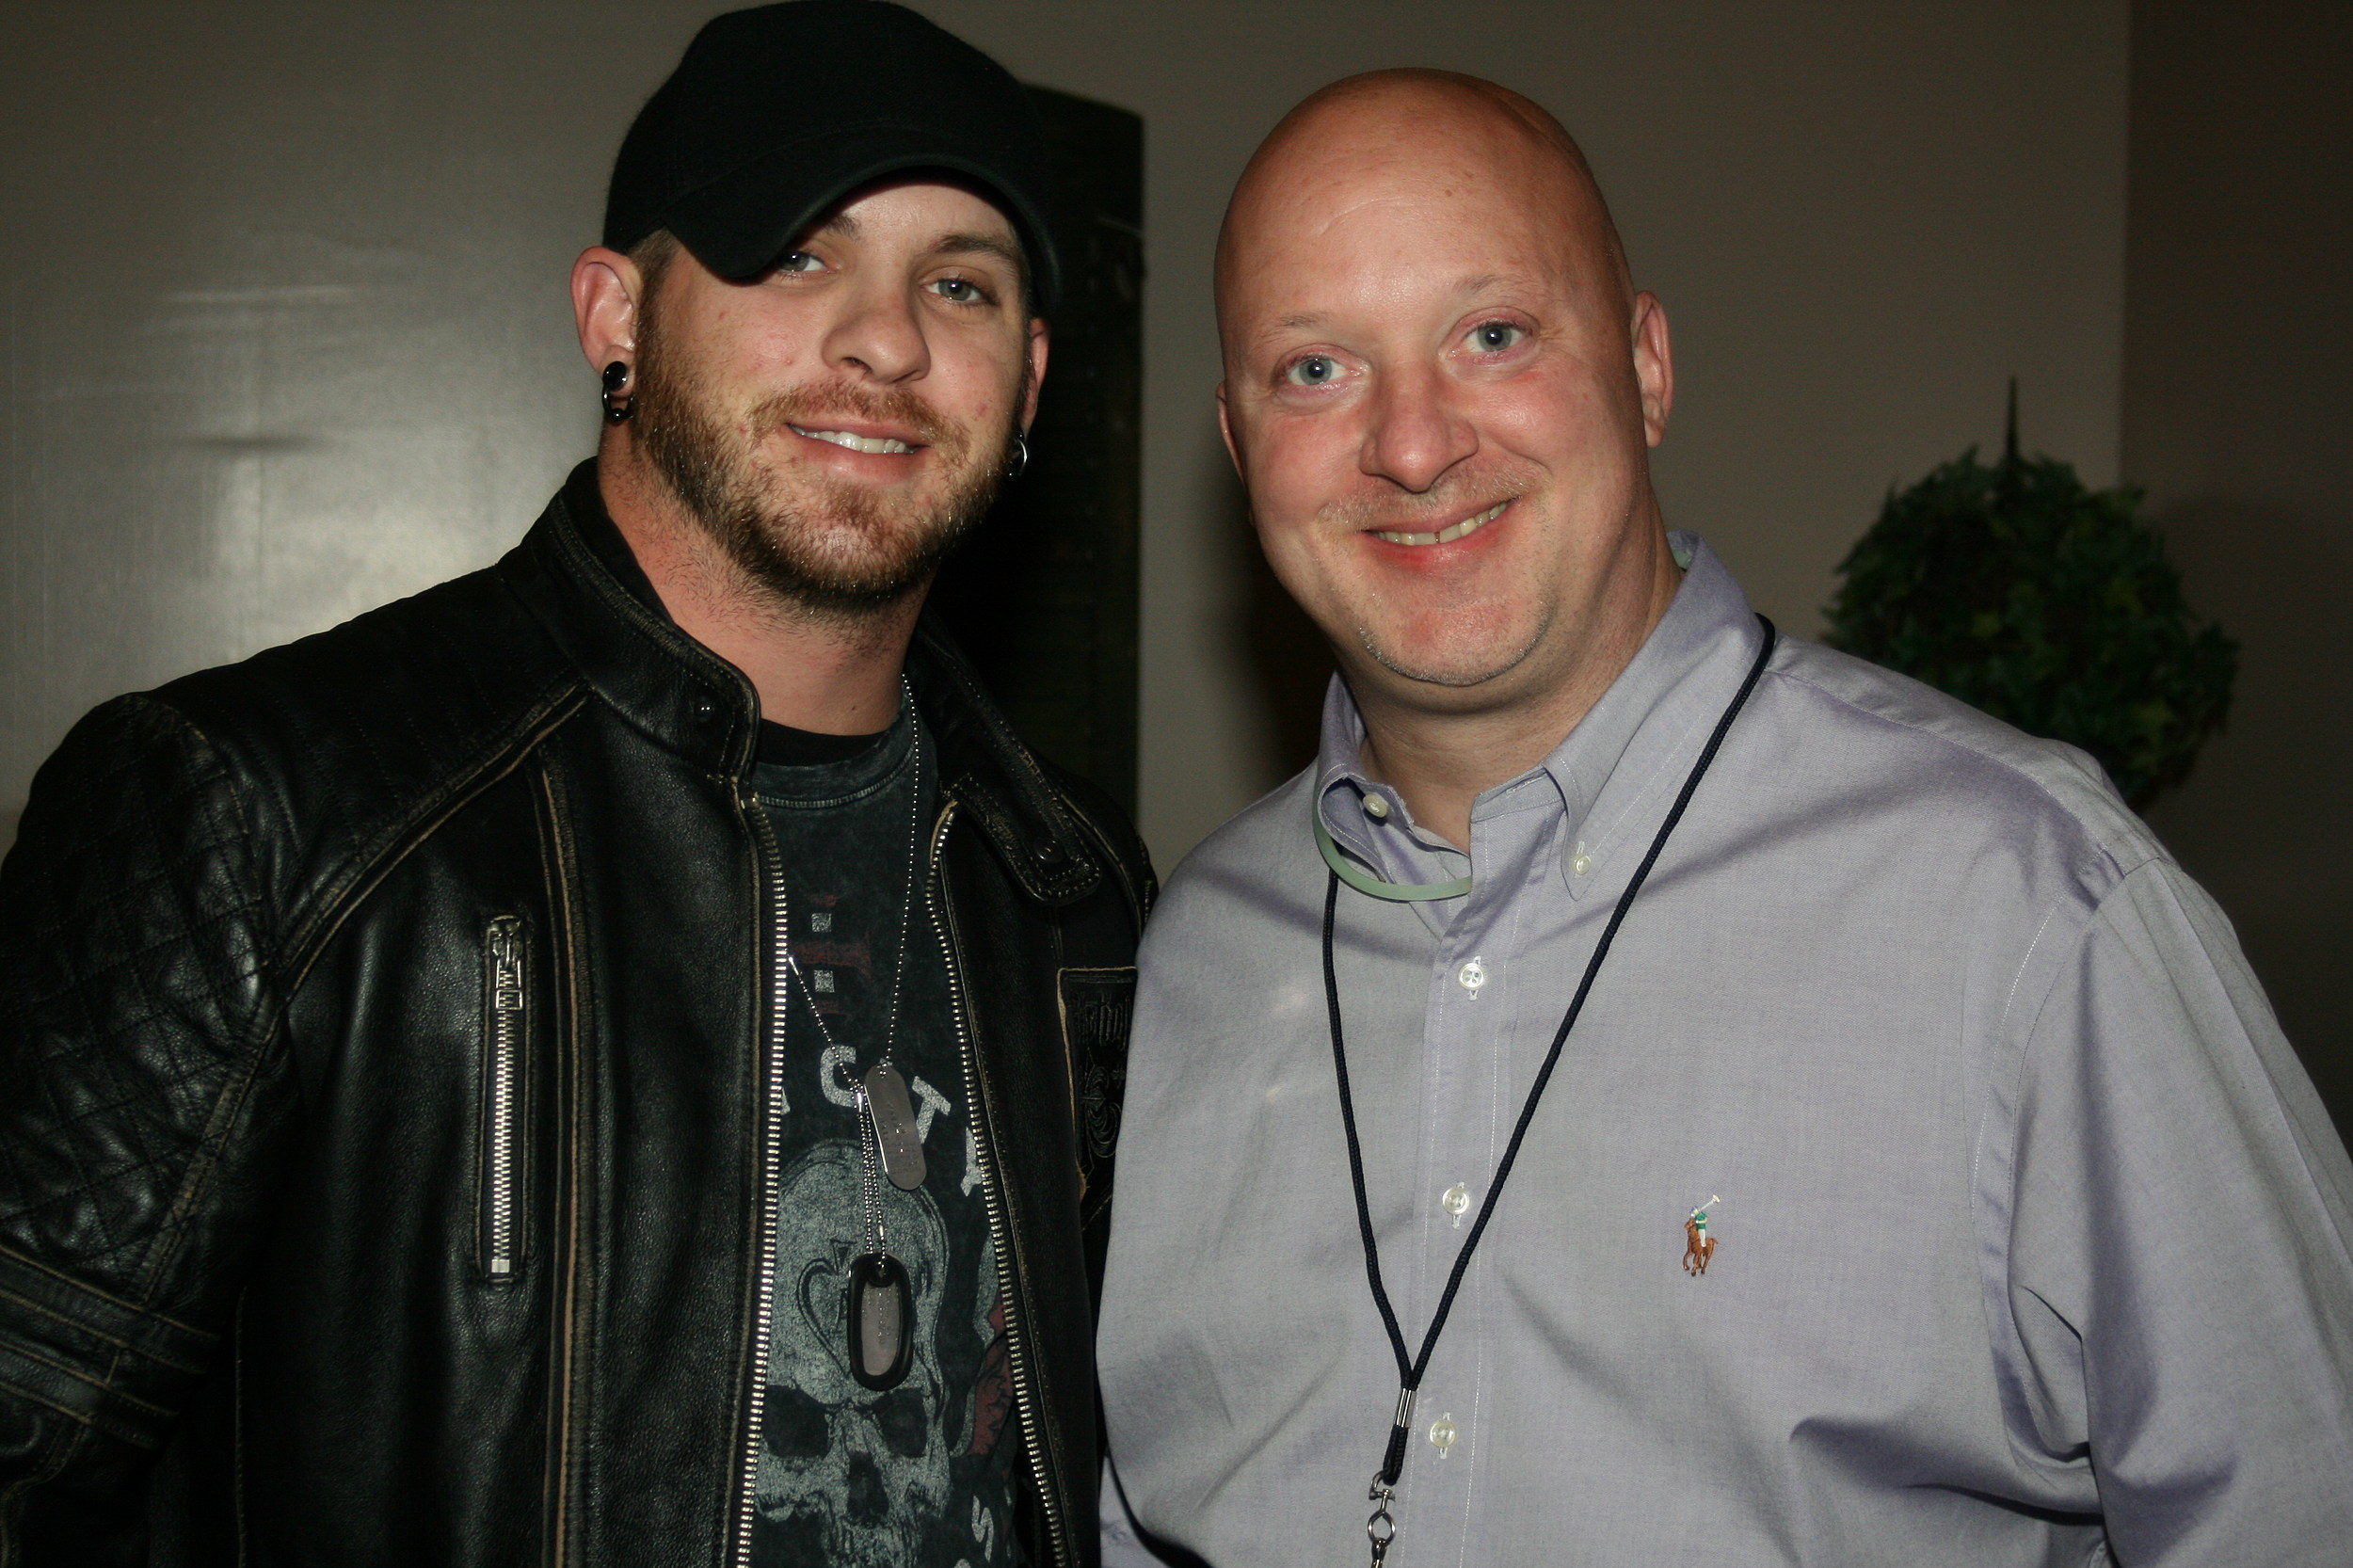 Meet And Greet With Brantley Gilbert